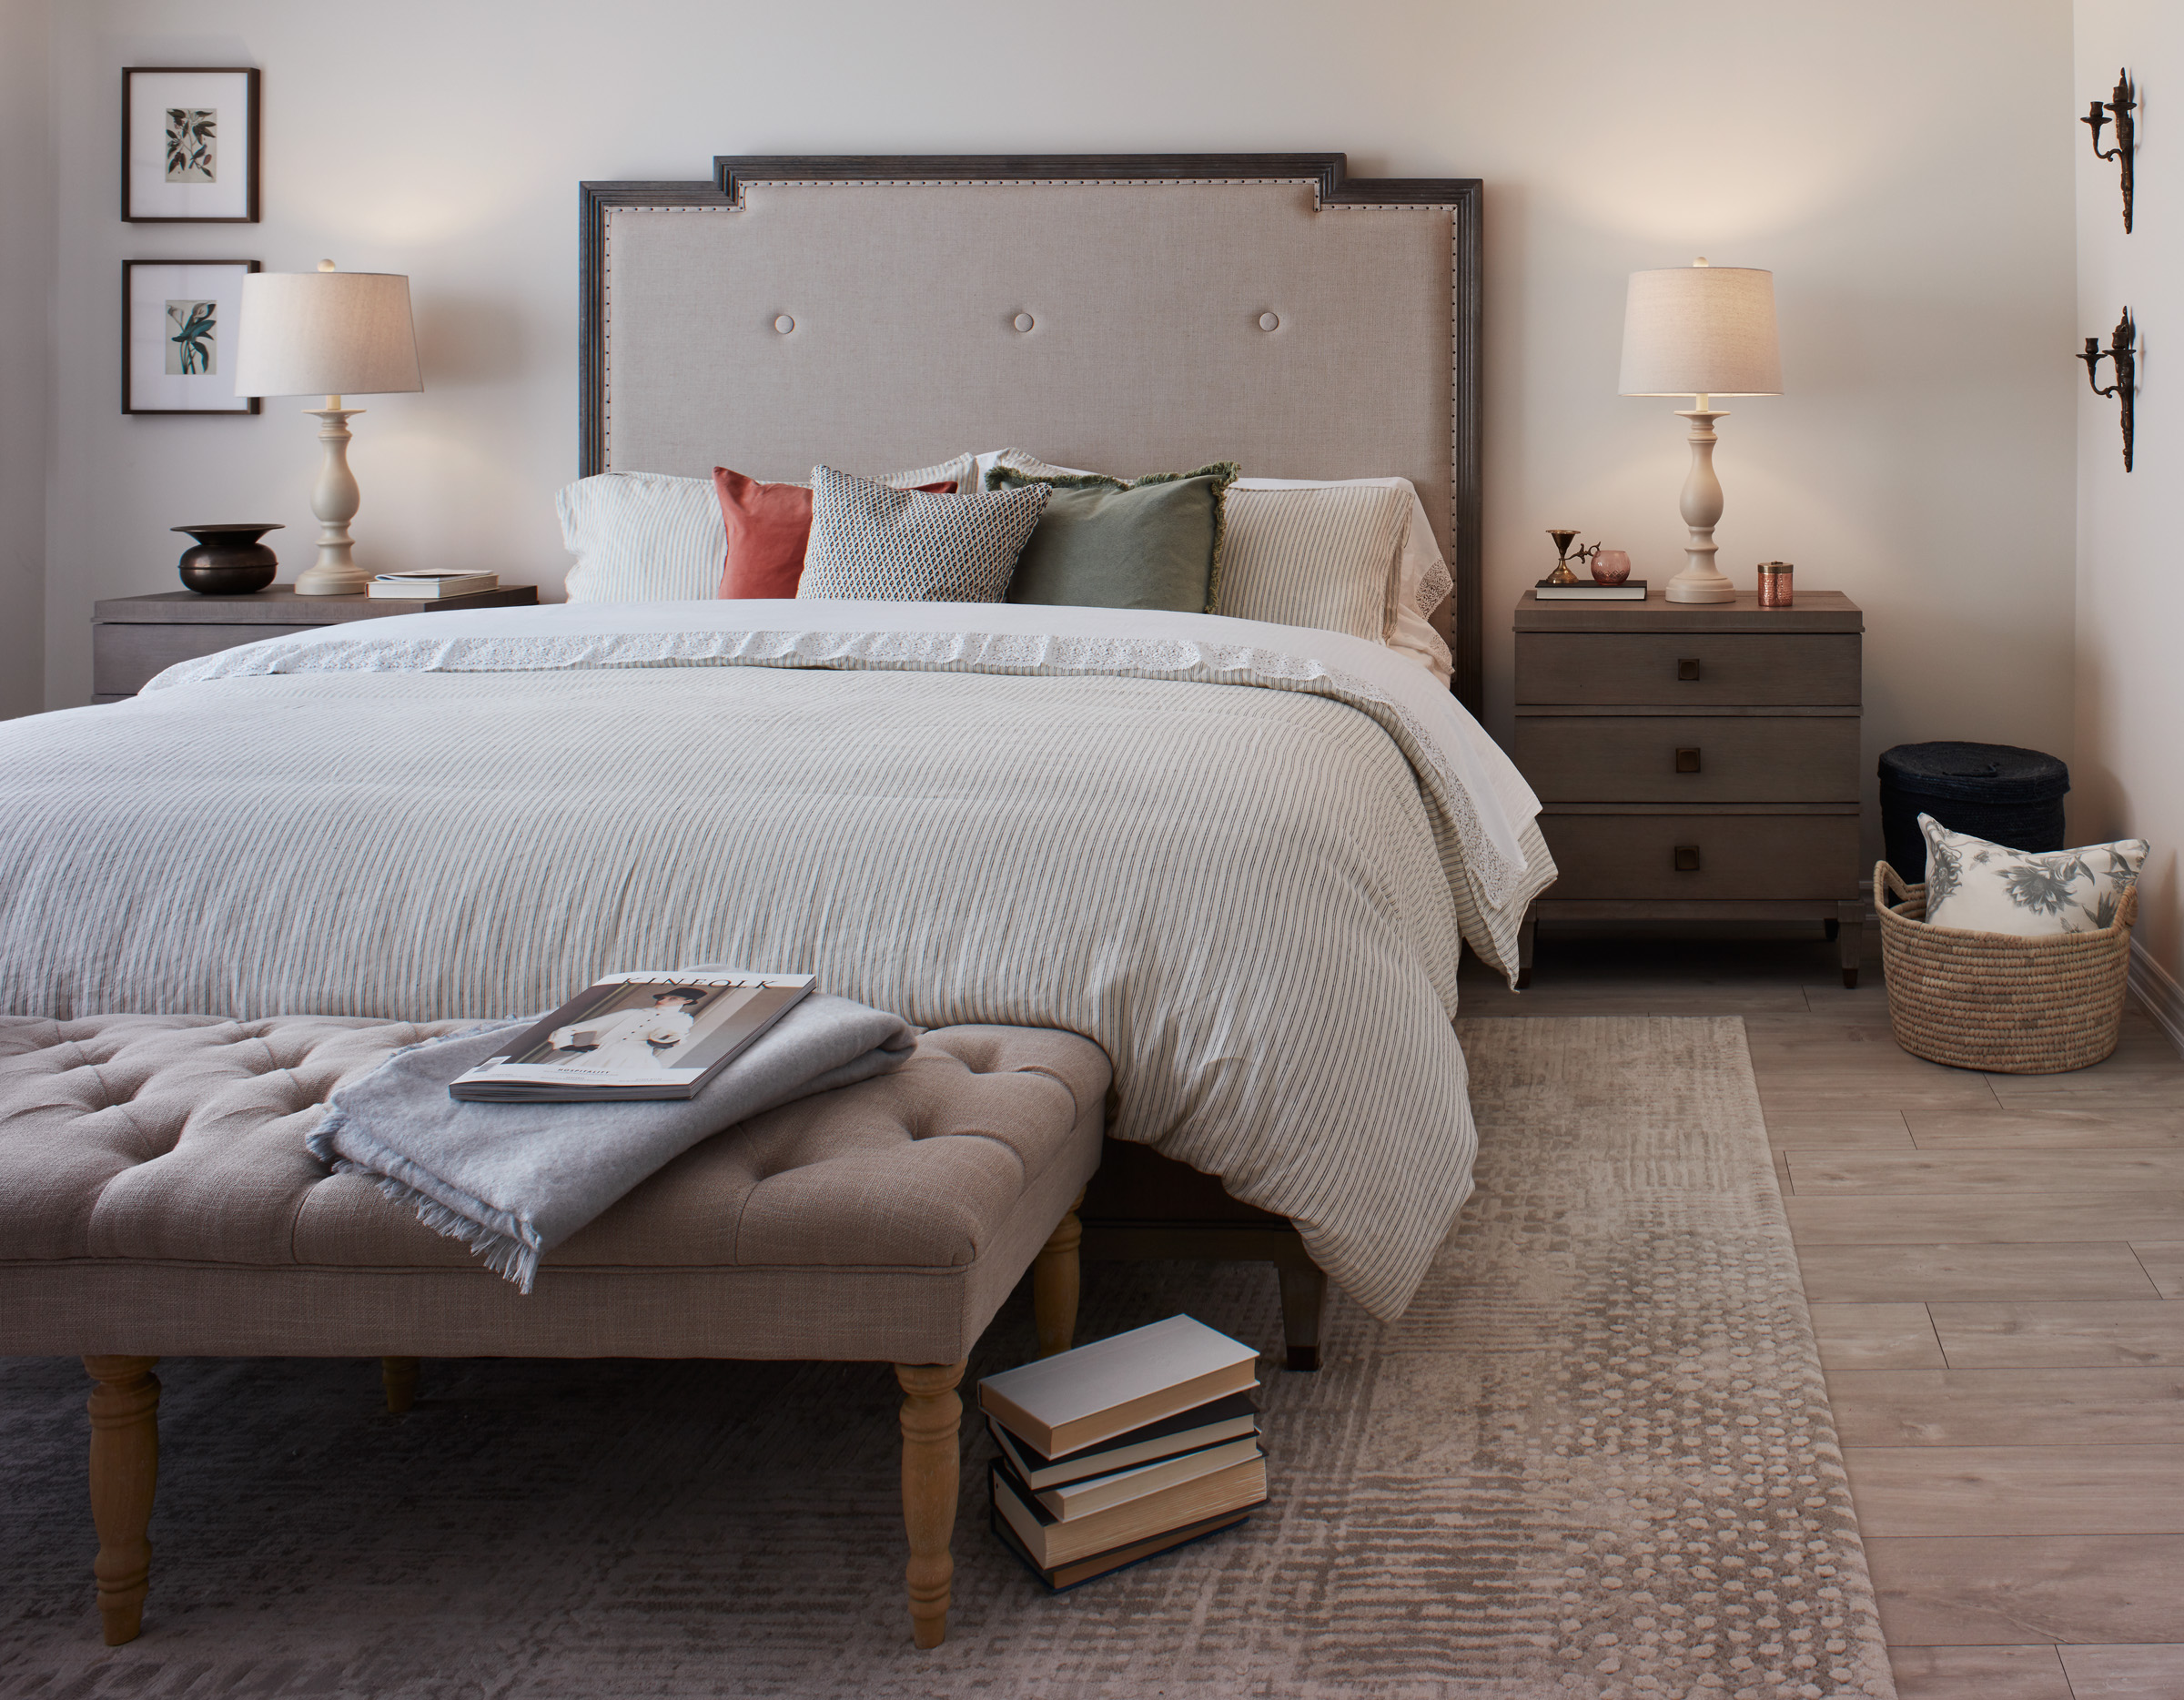 Shabby Chic master bedroom with upholstered bed and neutral coloured bedding, walls, and rug